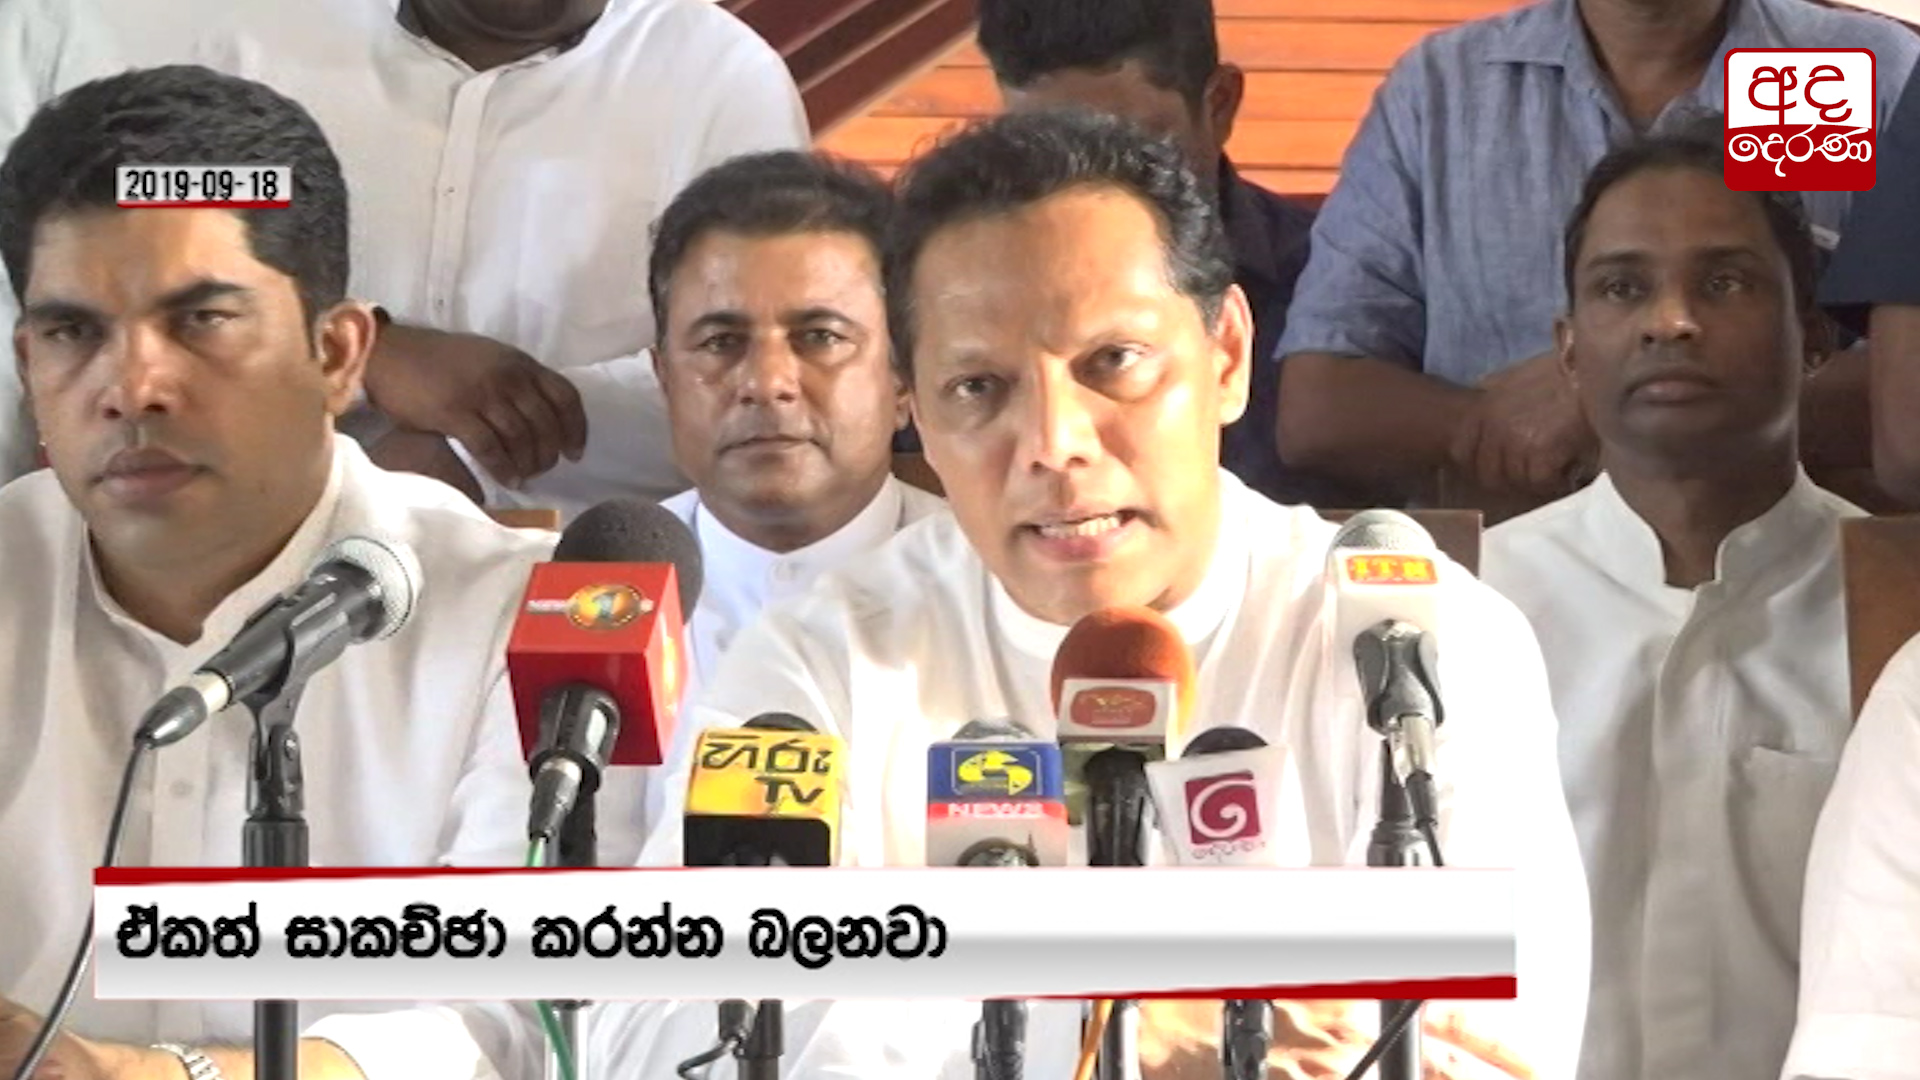 Will enter into coalition only if SLFP is prioritized - Dayasiri